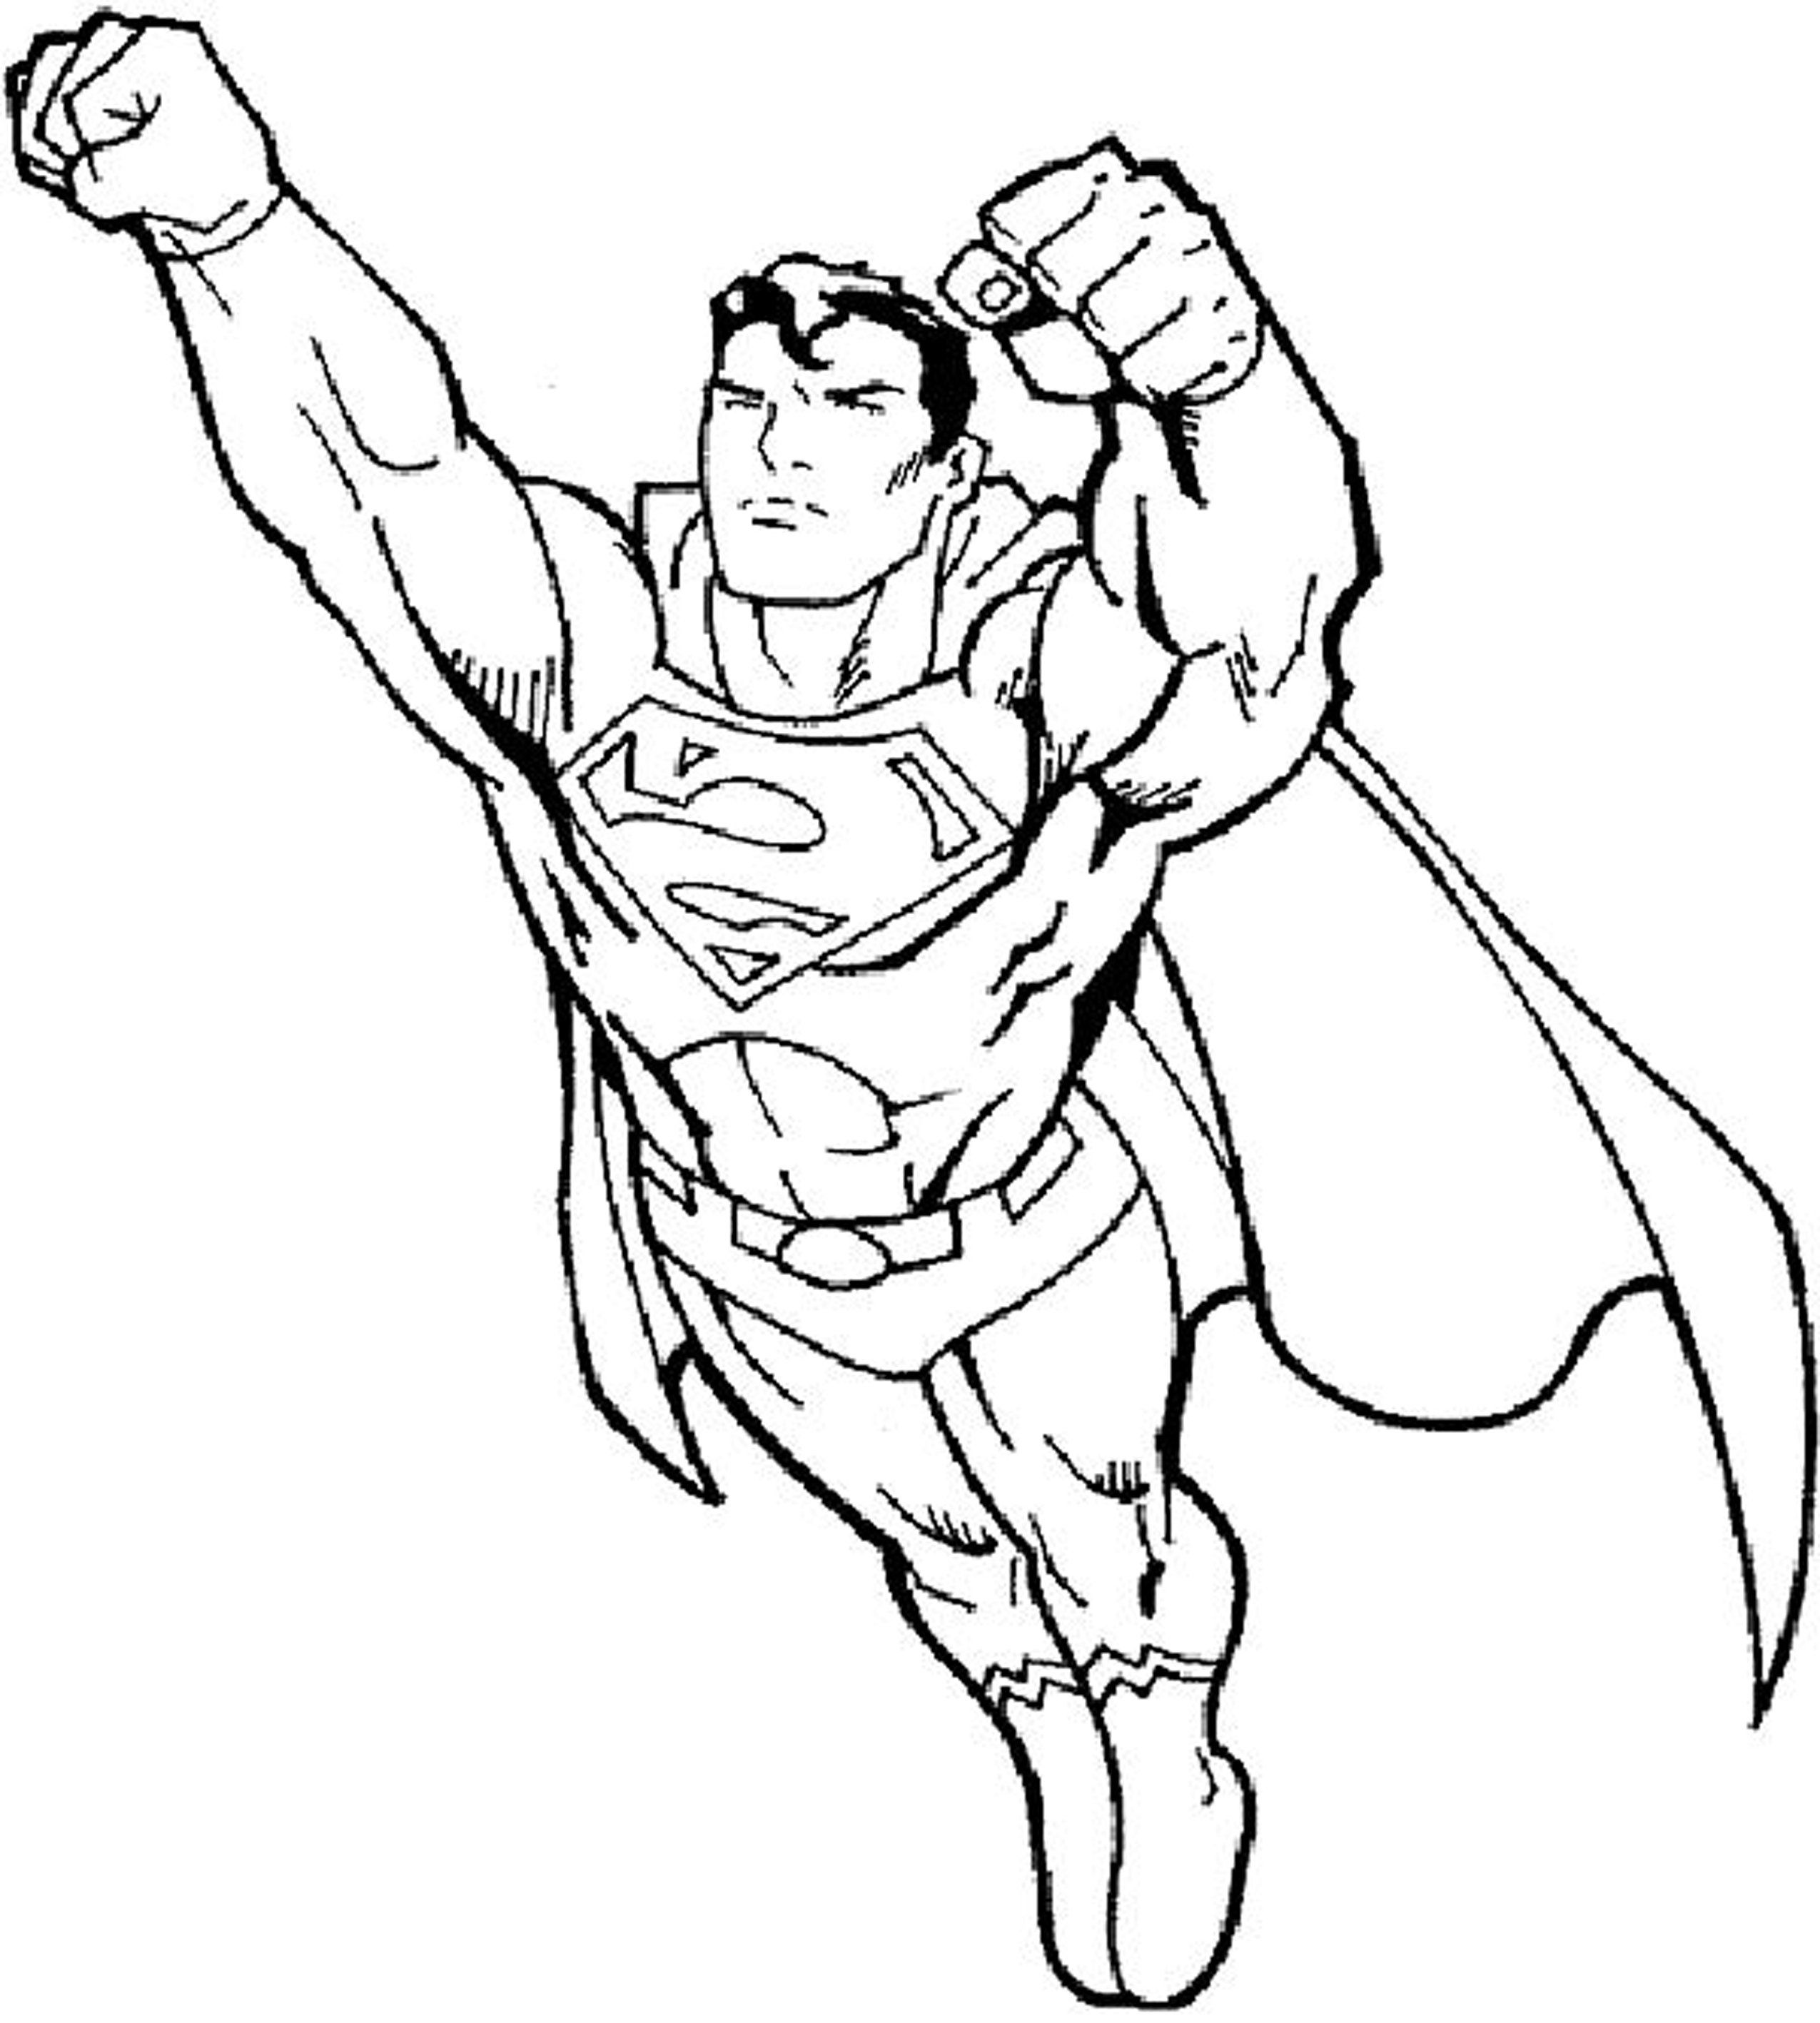 Coloring Pages Superman : Free coloring pages for boys superman clips pinterest